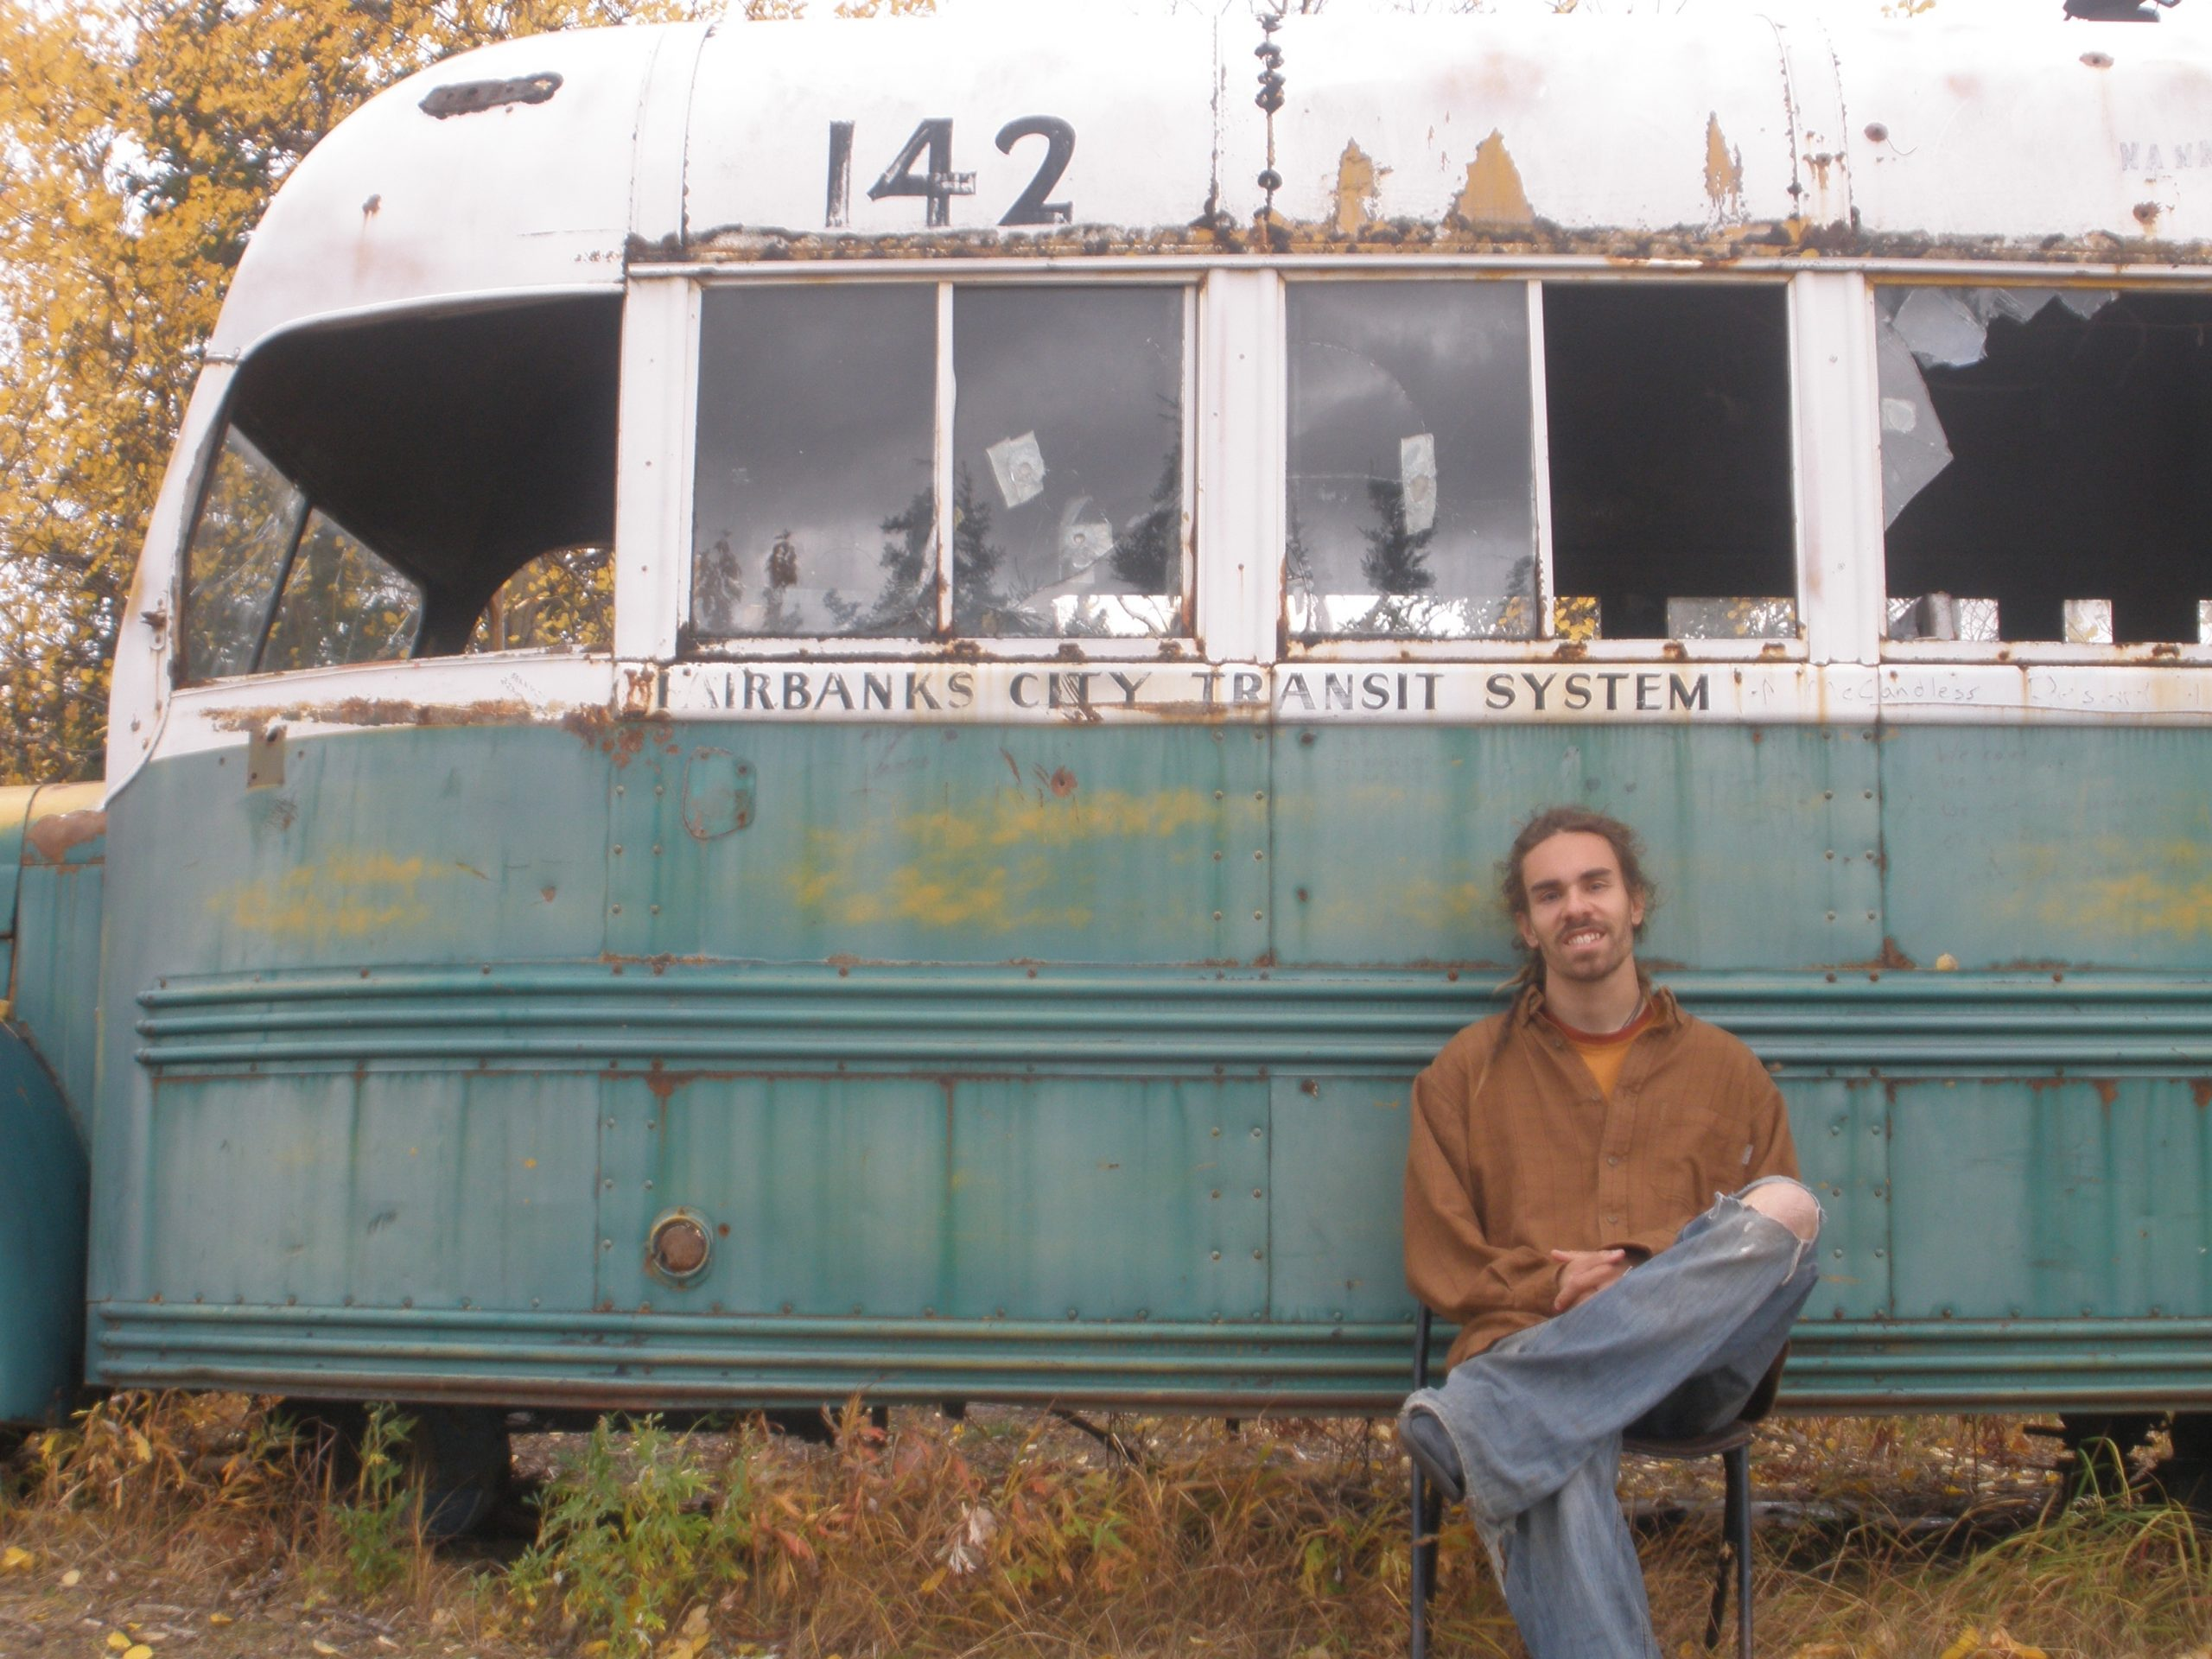 David Korn at Bus 142 on September 8 2011